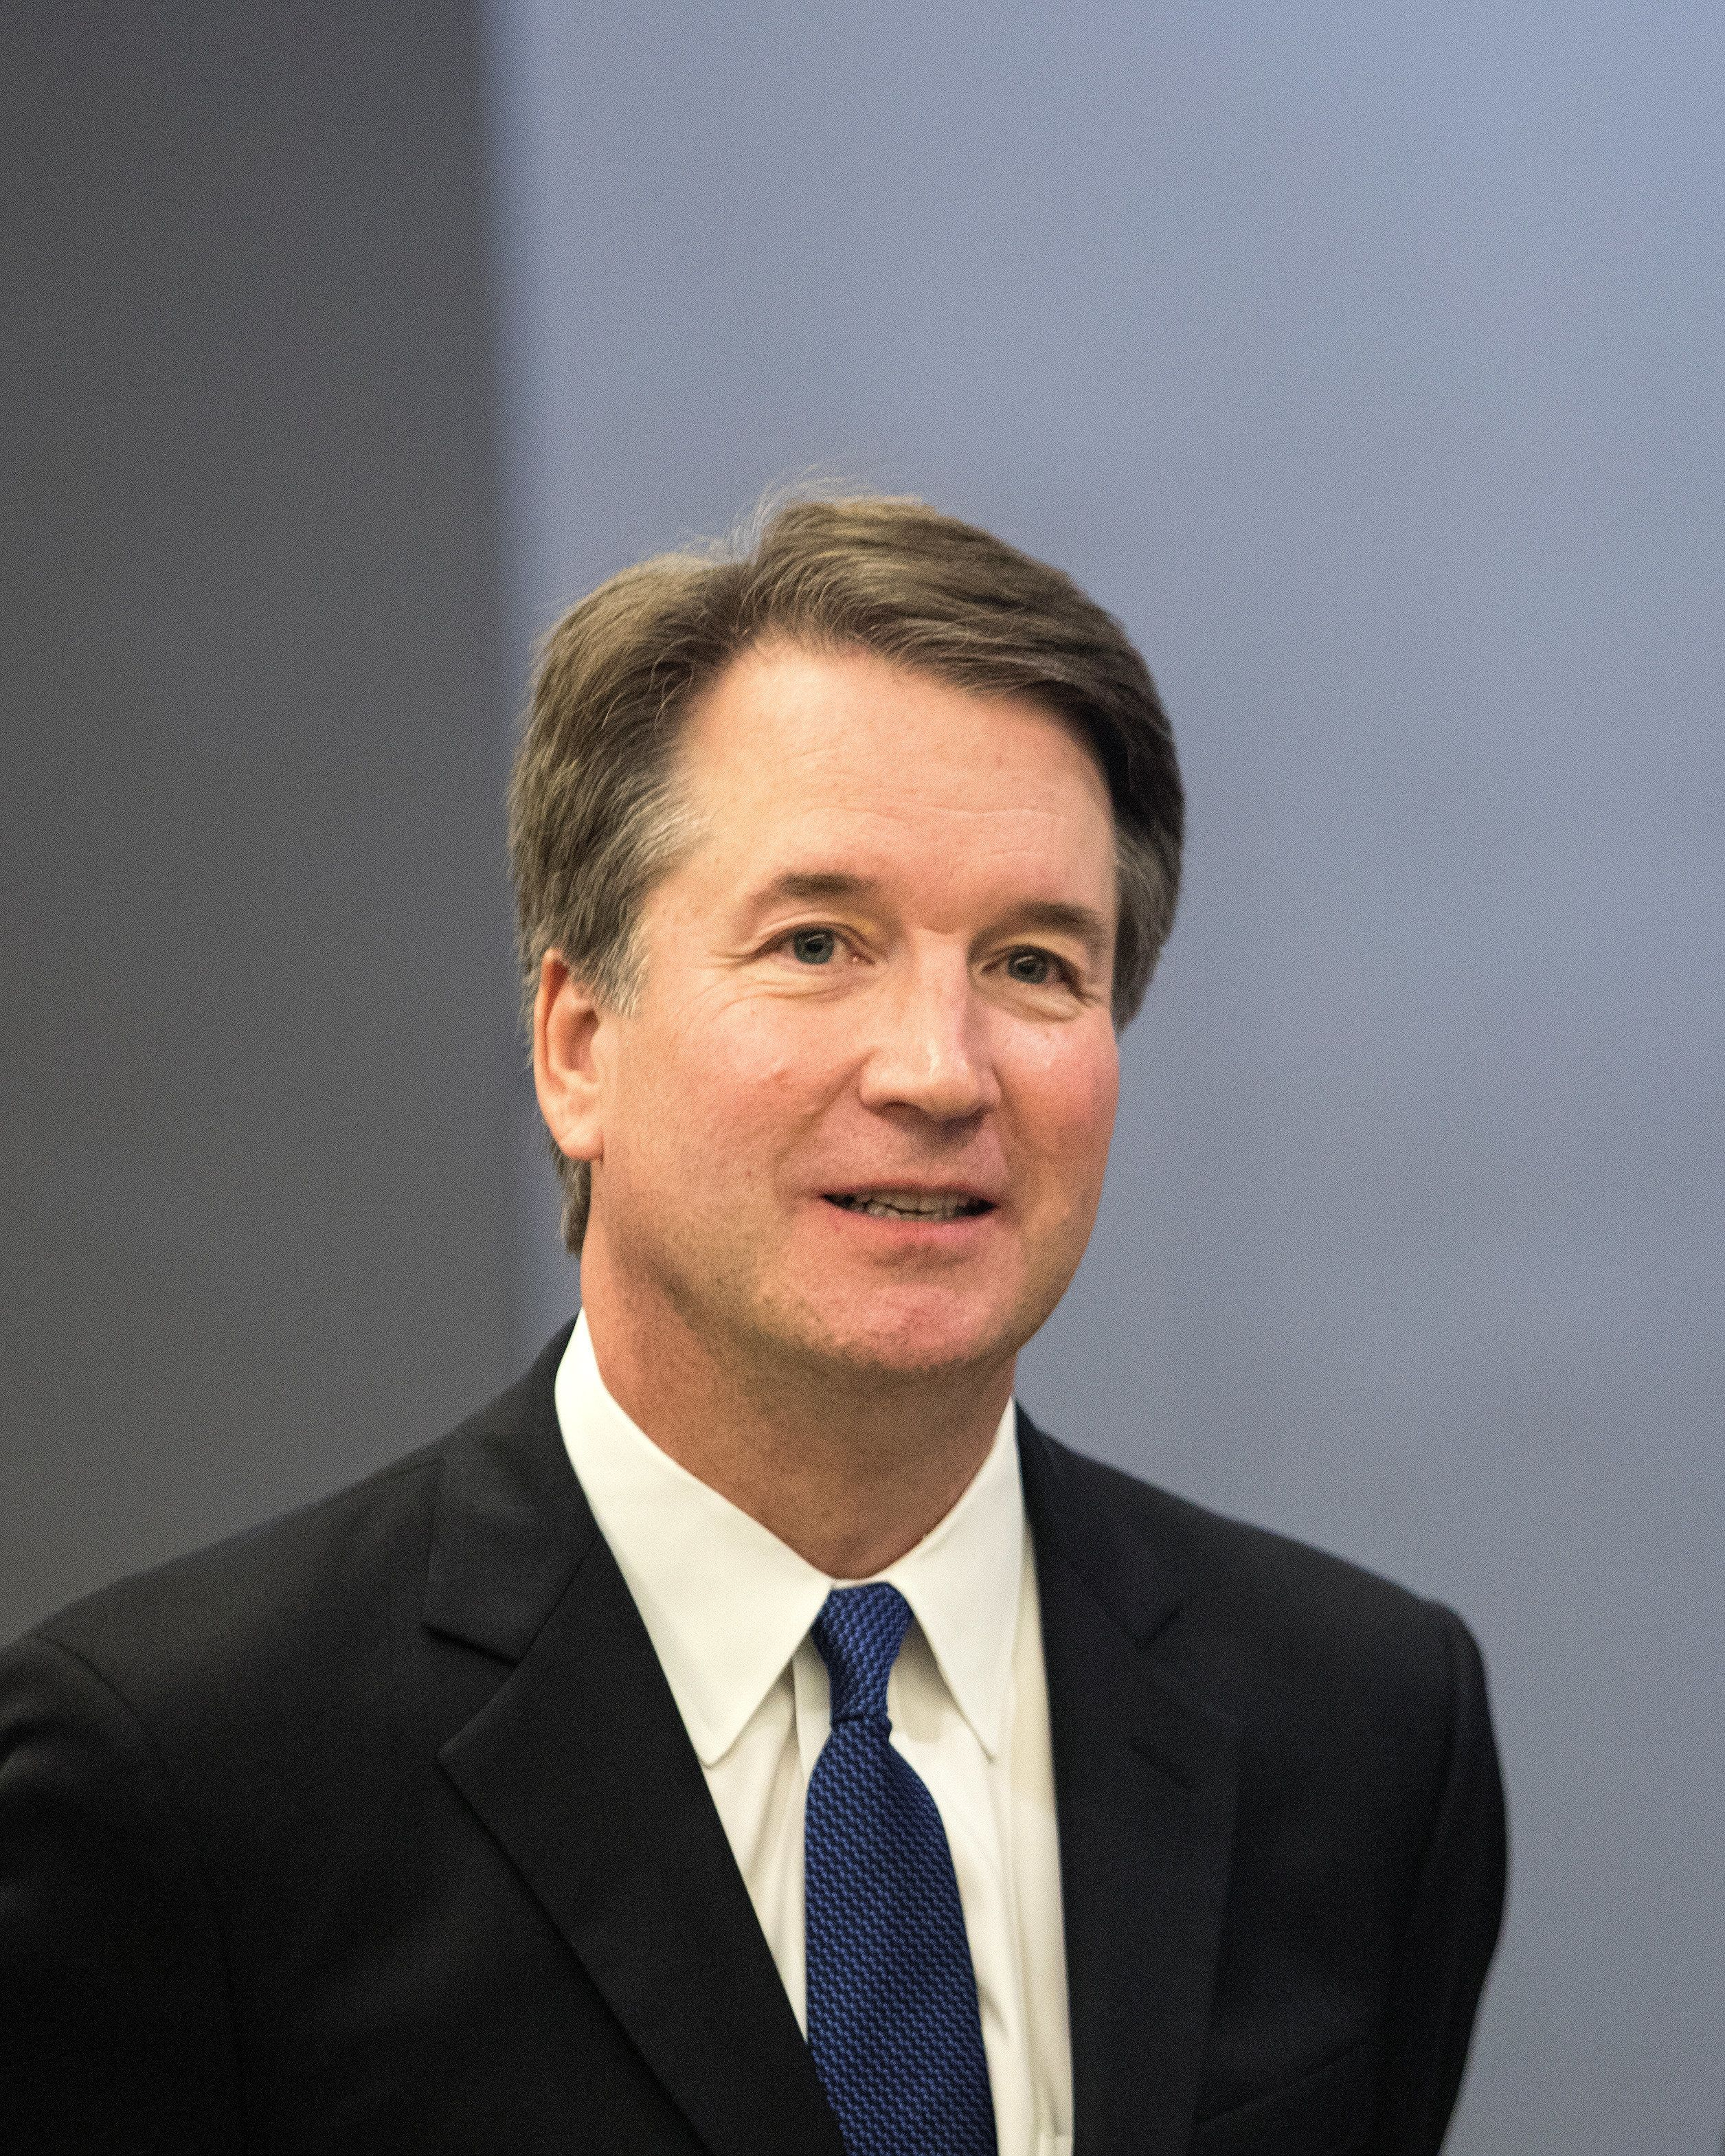 U.S. Supreme Court  nominee Brett Kavanaugh seen before meeting with U.S. Senator Amy Klobuchar at the Hart Senate Office Building in Washington, U.S.,  August 21, 2018. REUTERS/Alex Wroblewski